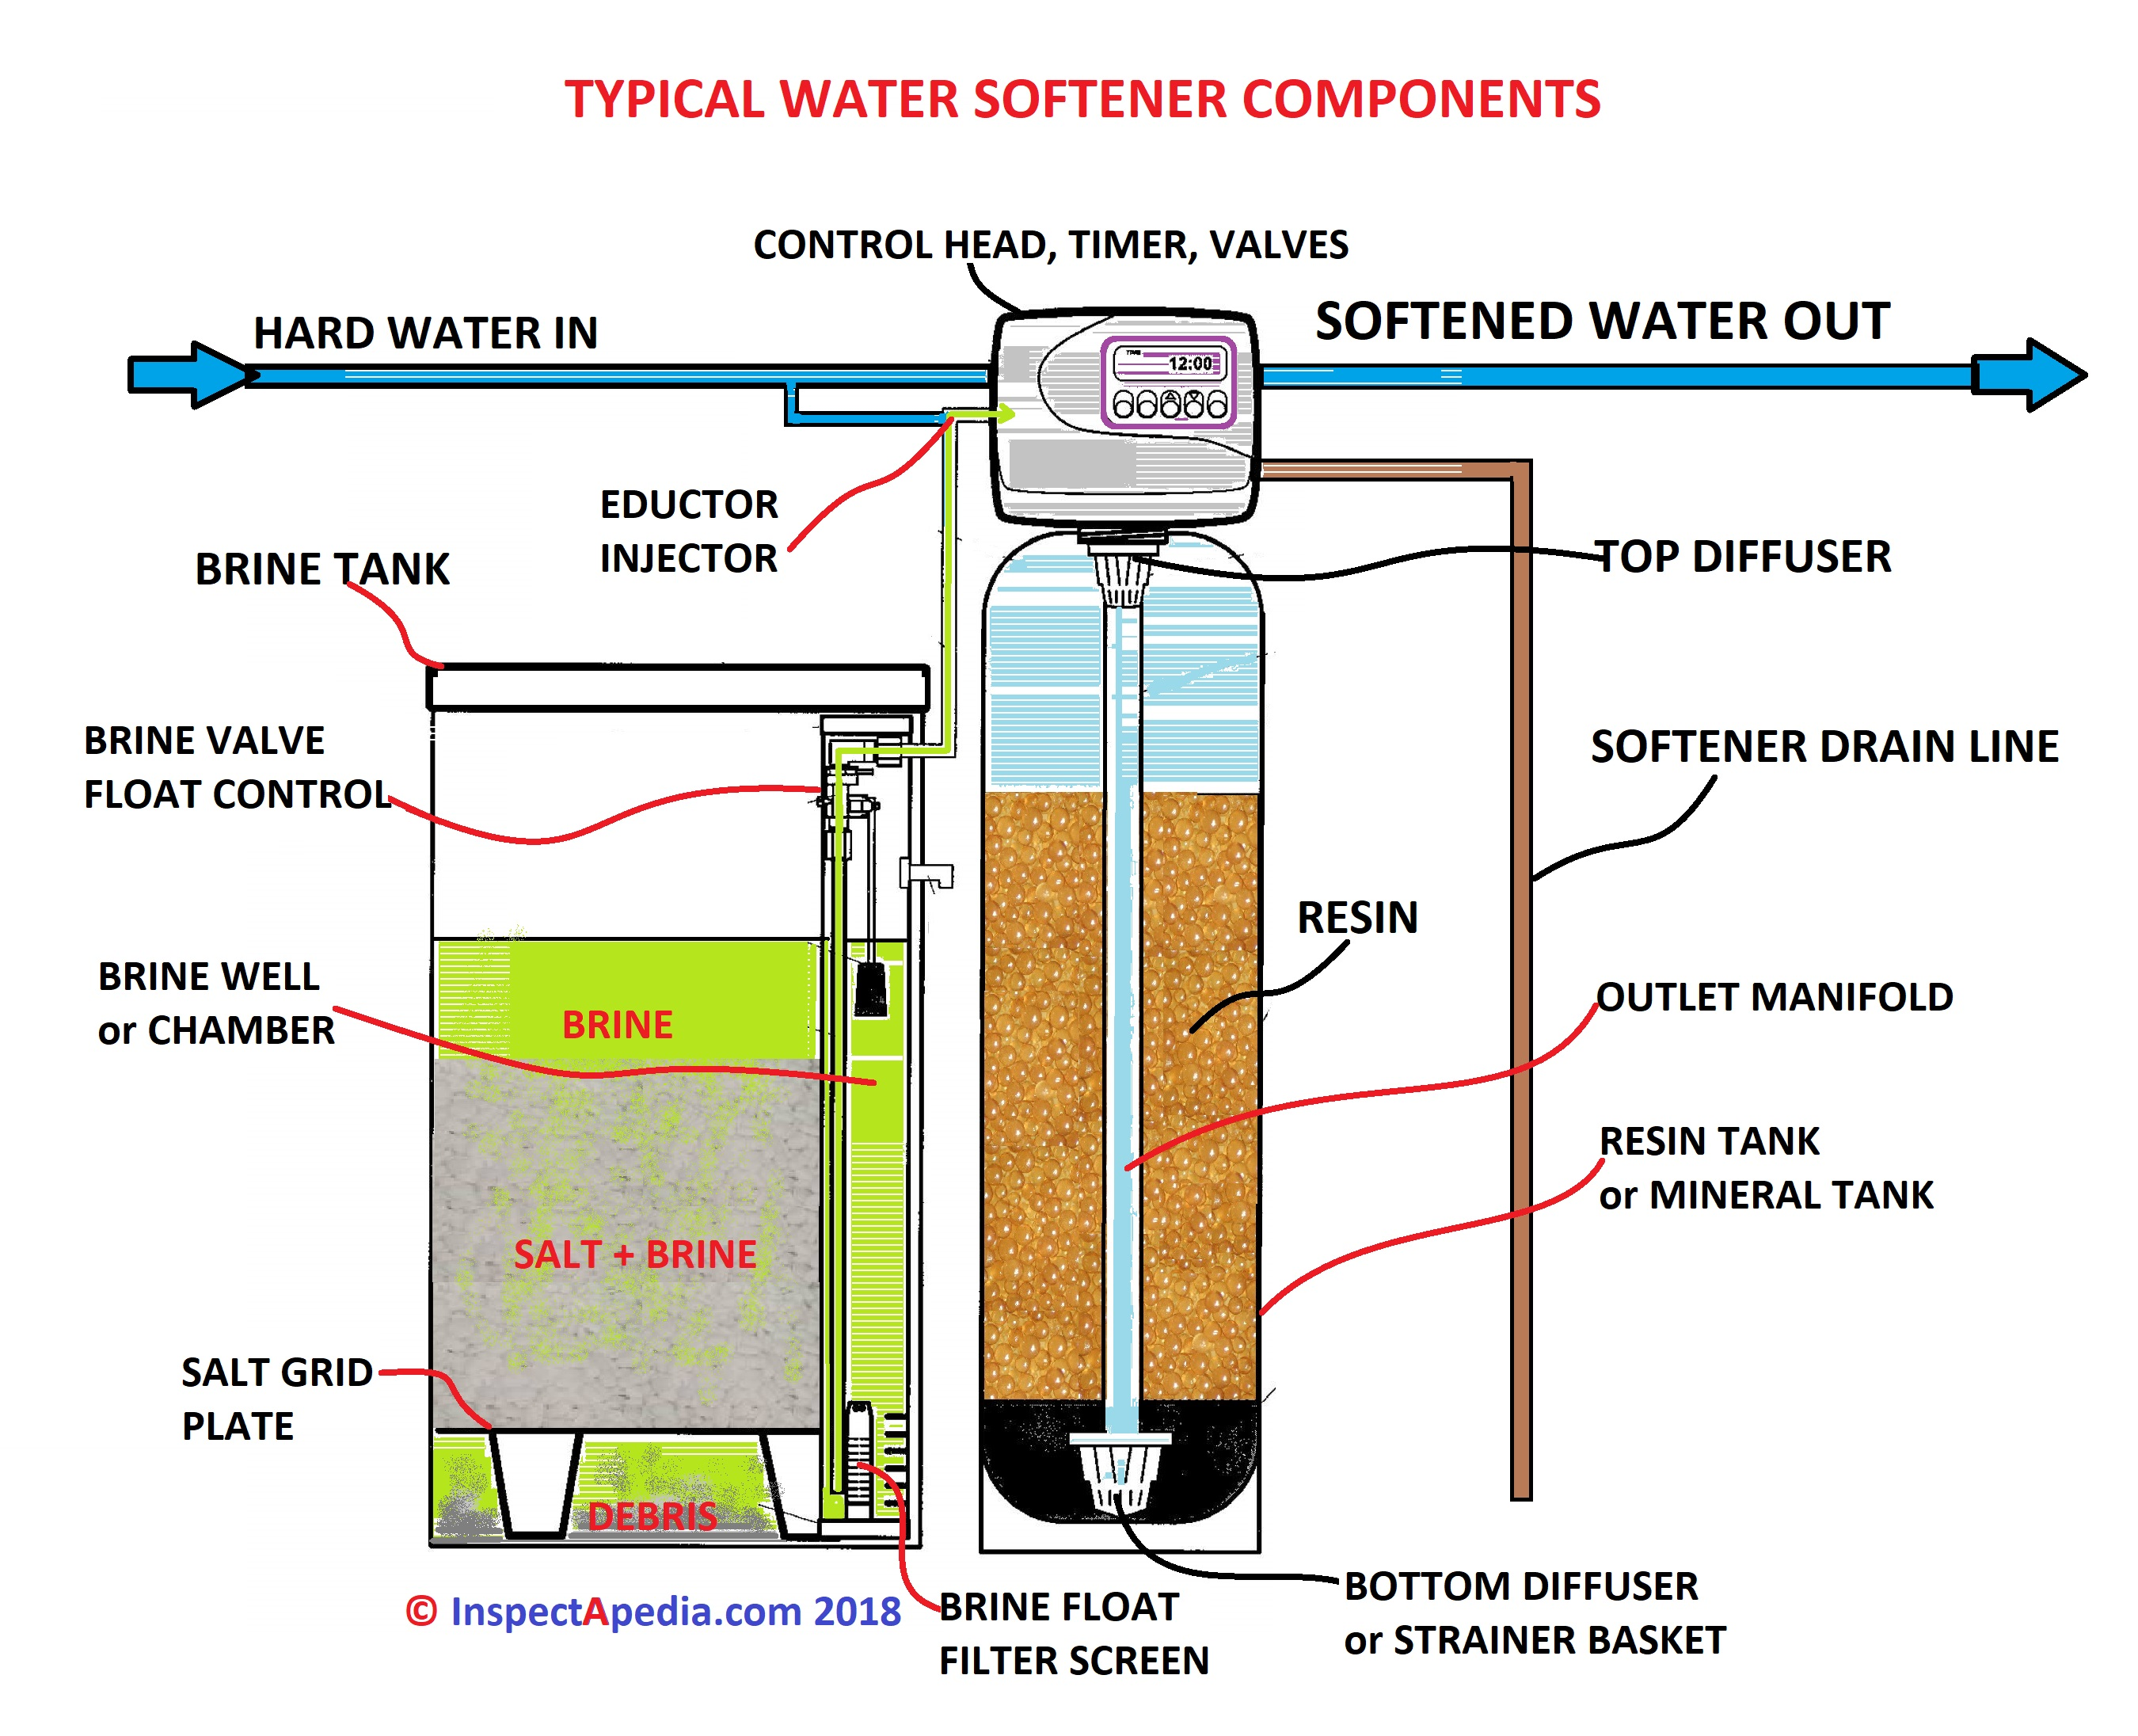 water softener operation: service cycle & regen cycle steps